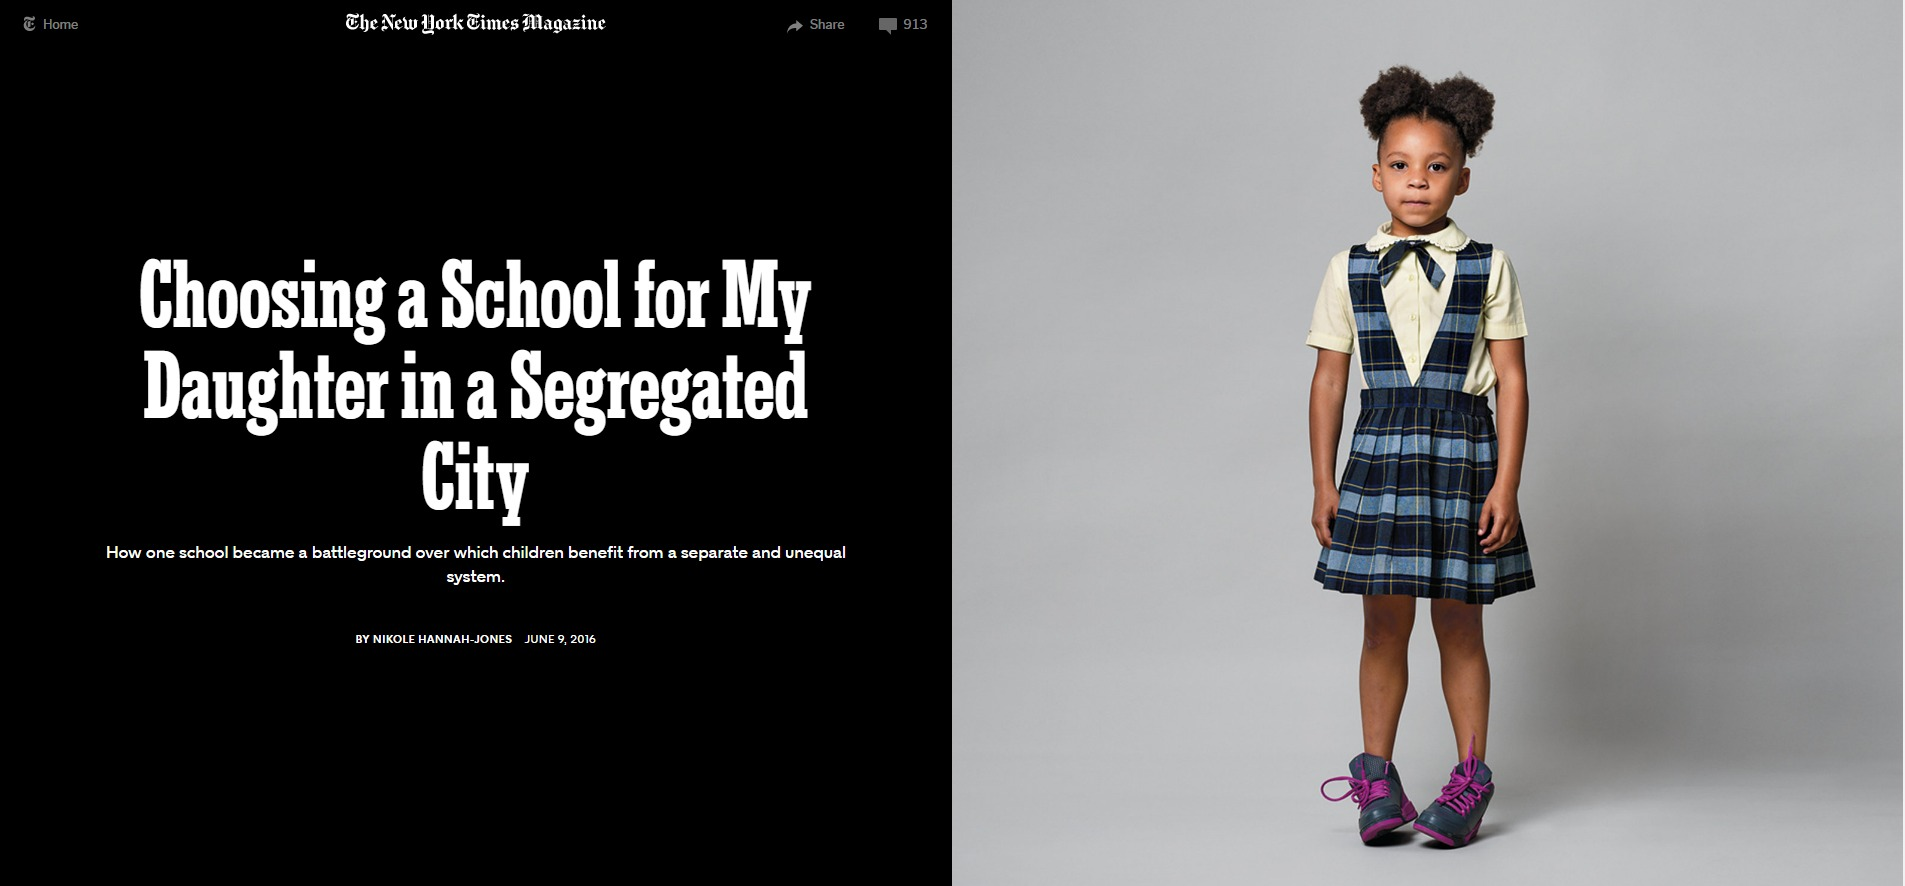 choosing_a_school_for_my_daughter_in_a_segregated_city___the_new_york_times.jpeg